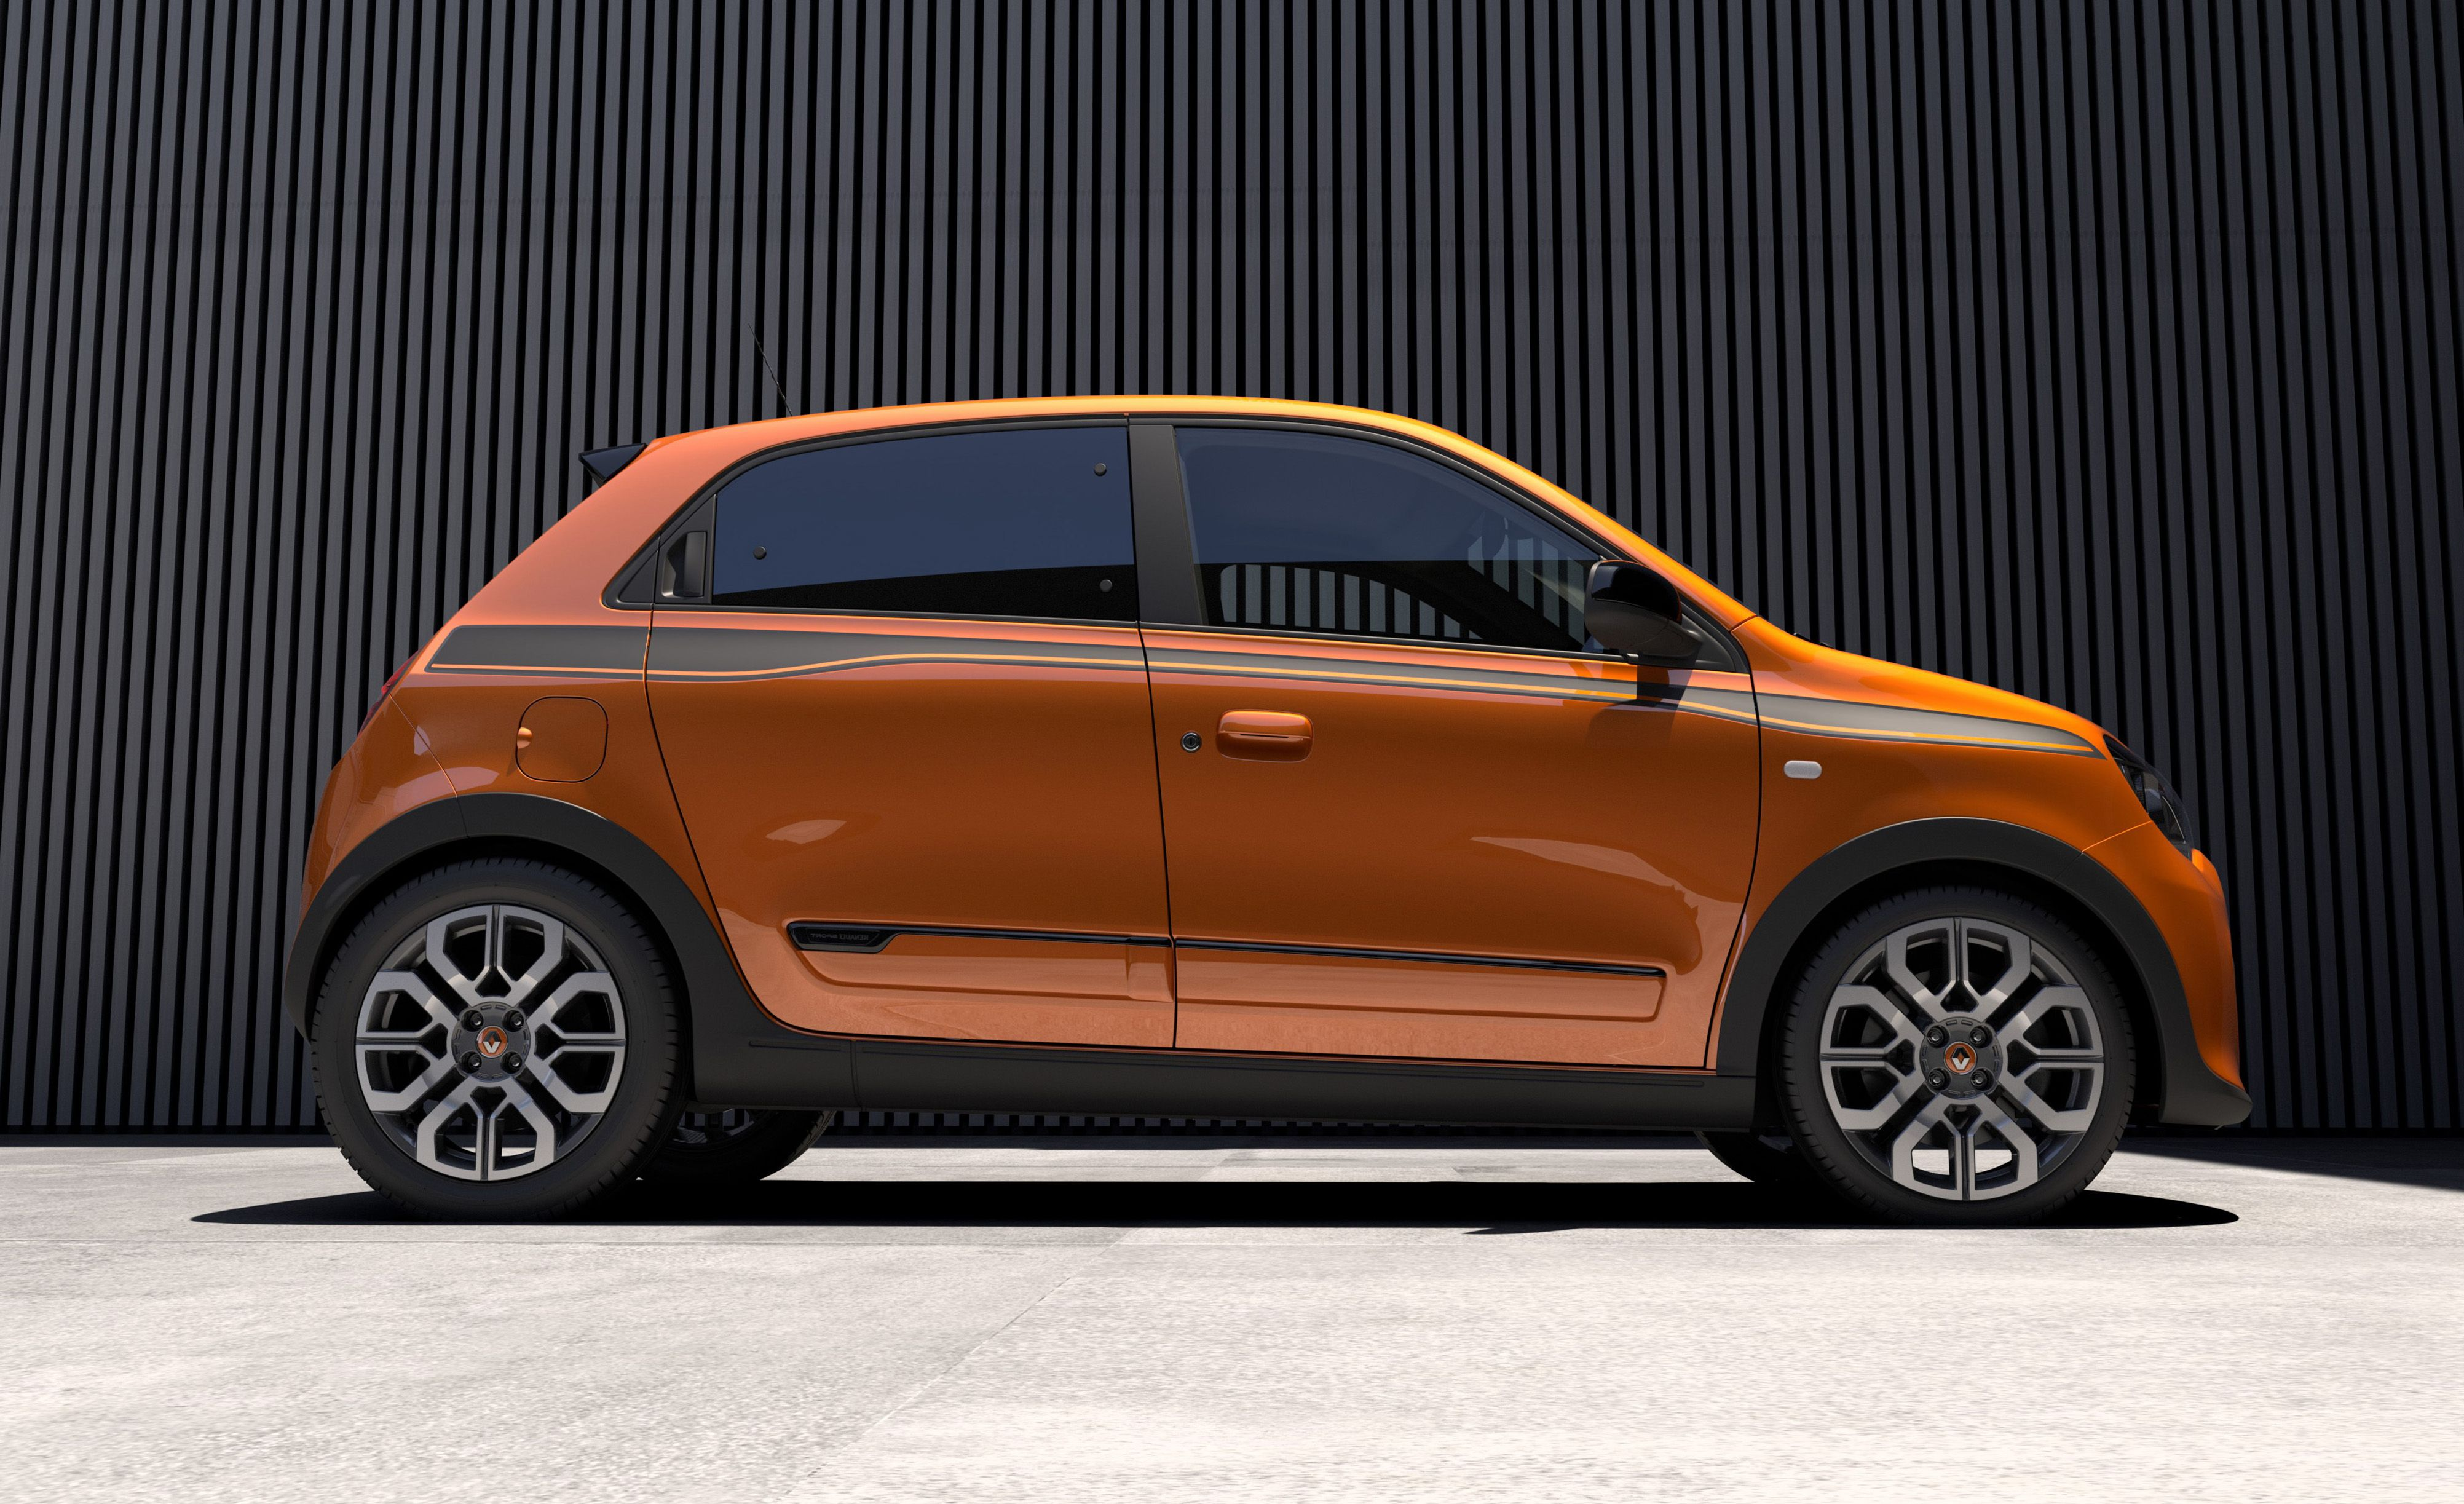 Renault Twingo Gt Is Une Petite Hatch With 0 9 Liter Of Turbo Fury